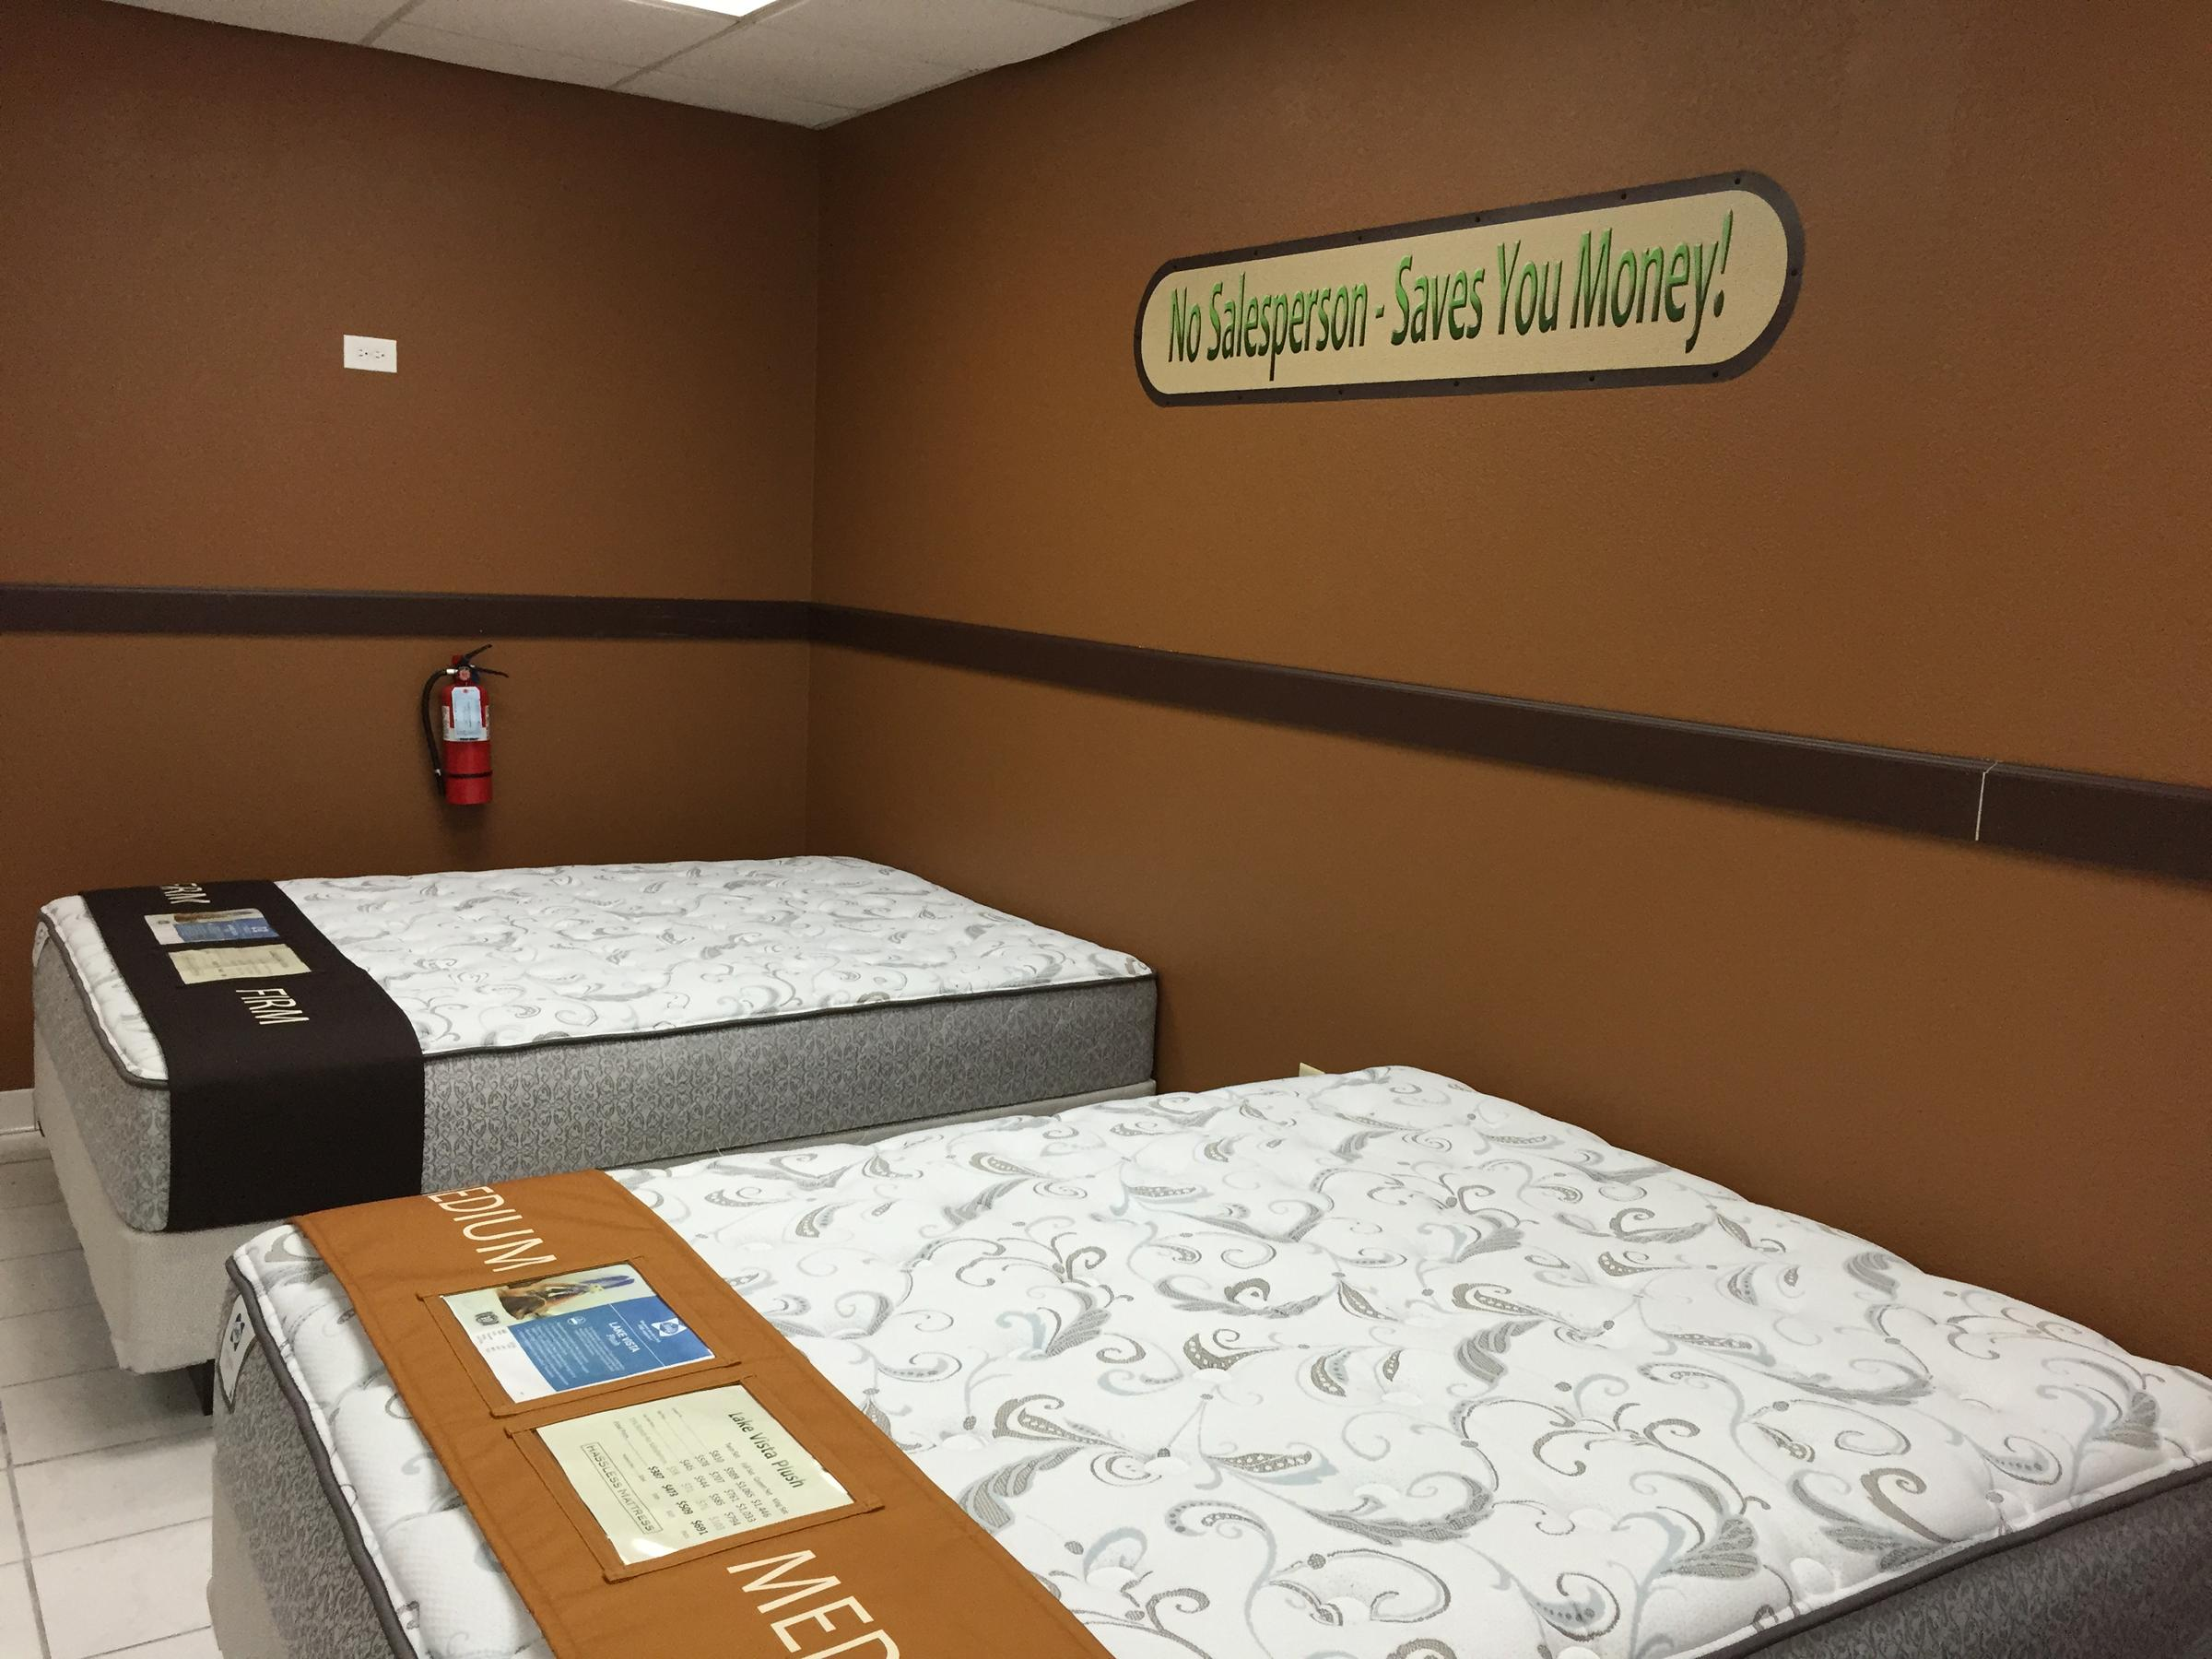 Milwaukee Area Mattress Tries